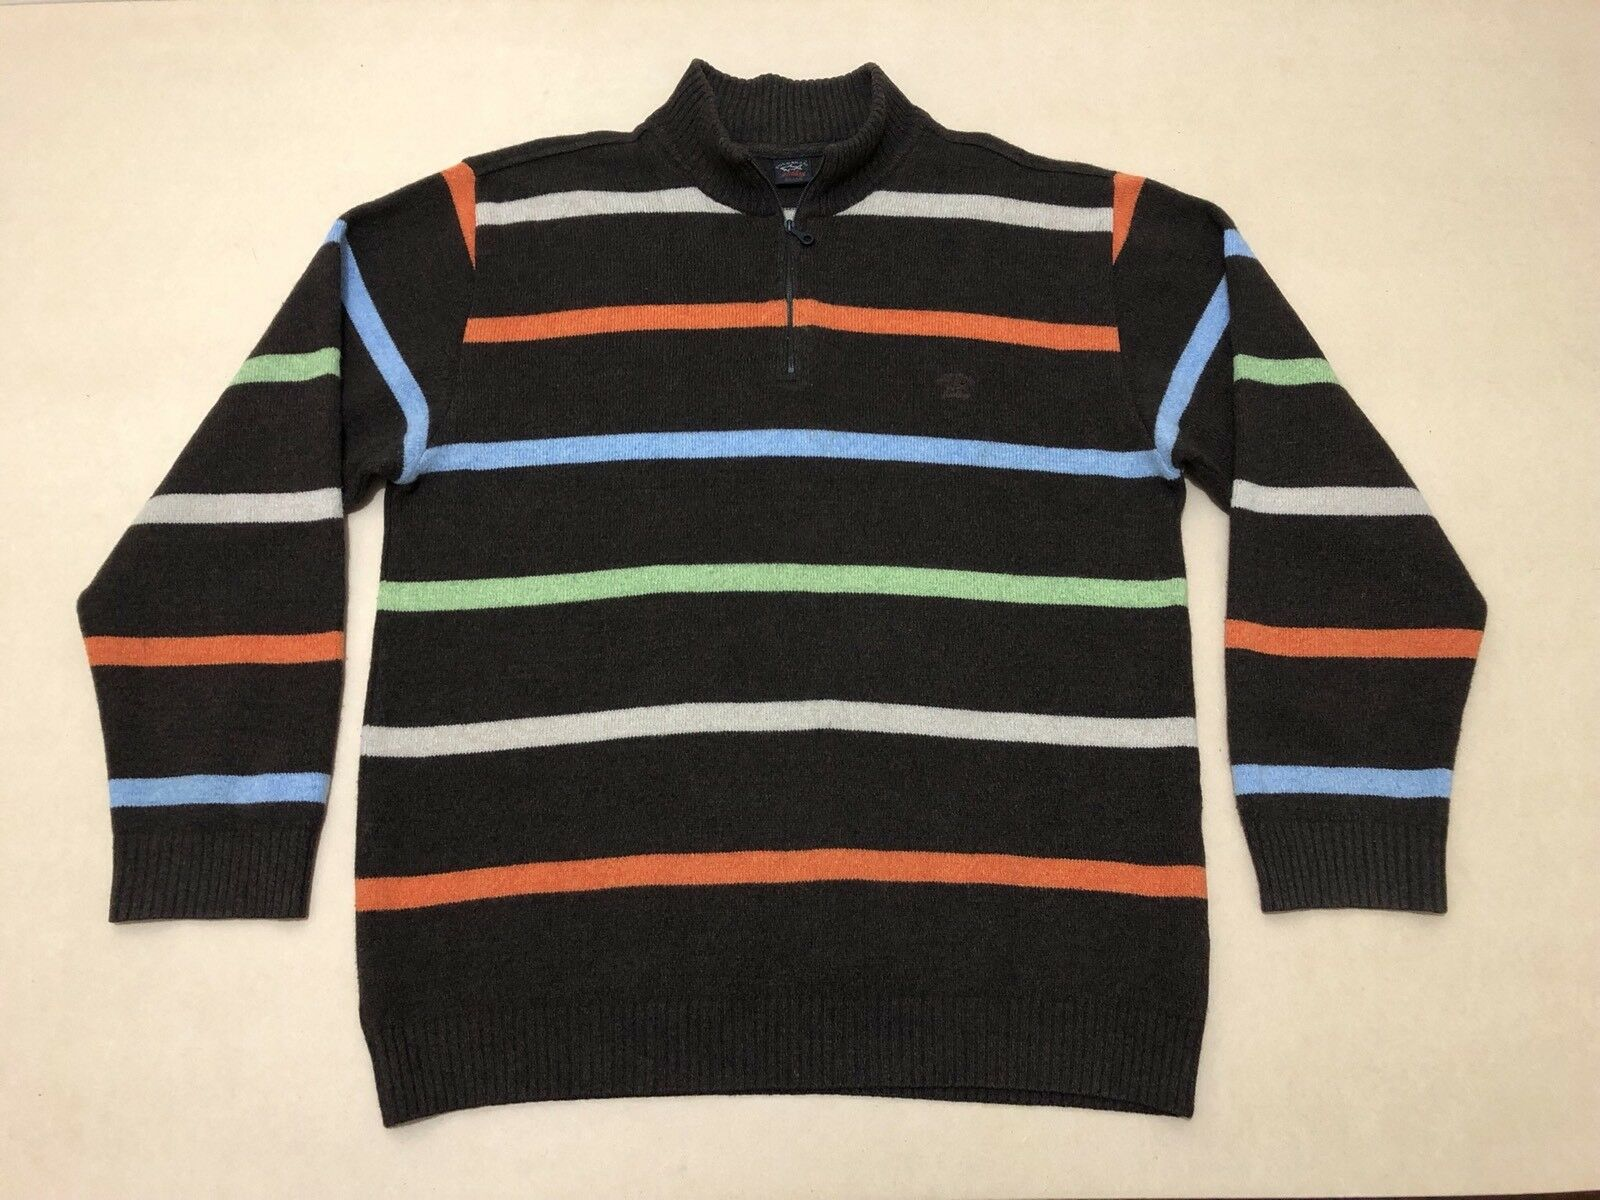 PAUL & SHARK JUMPER SWEATER  Herren  SIZE LARGE  GREAT COND 1/4 ZIP UP STRIPES